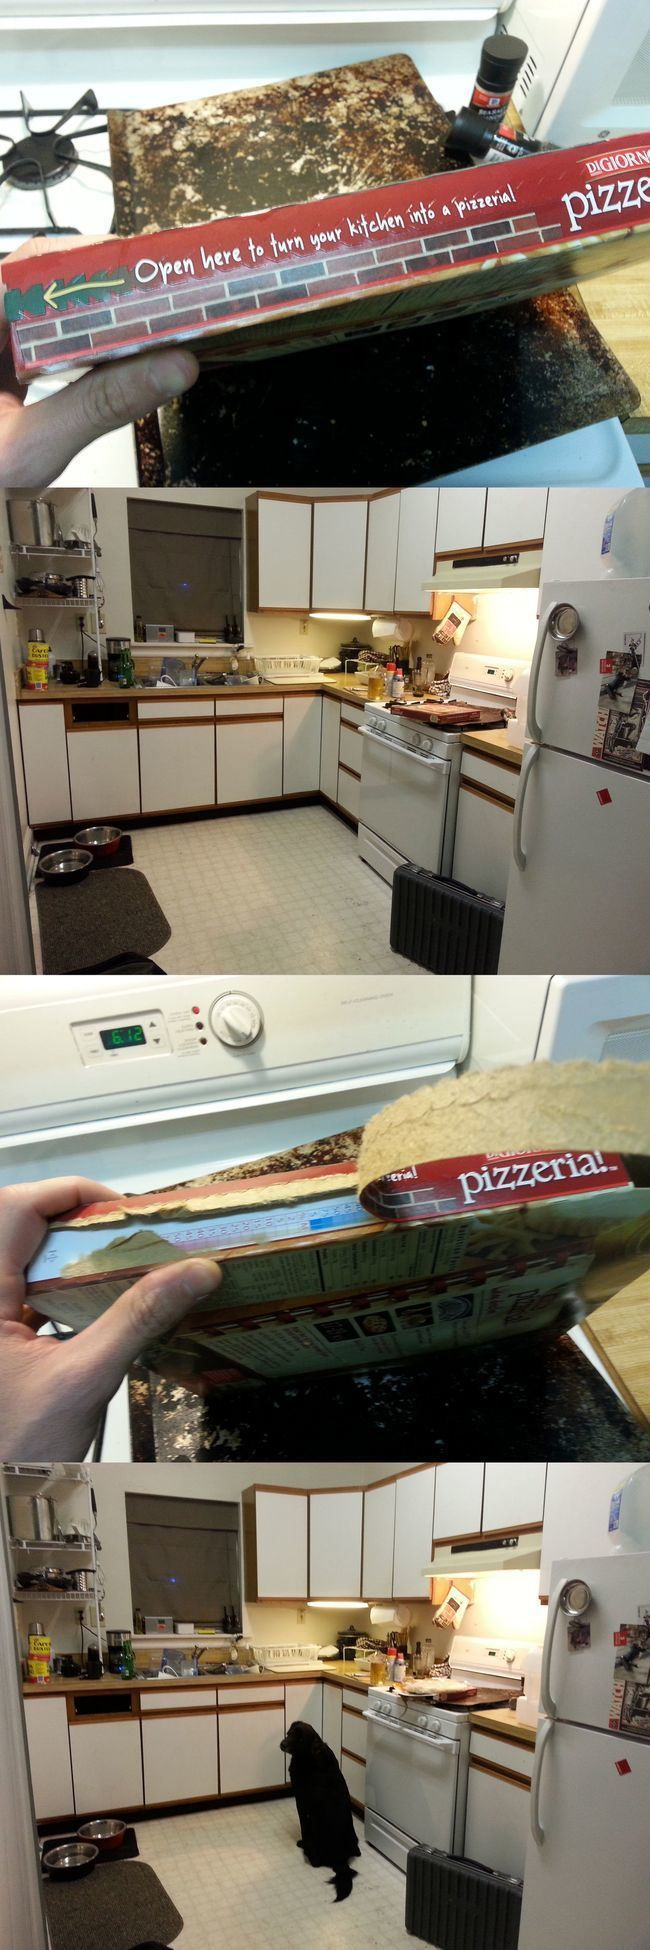 Pictures That Could Create Some Serious Trust Issues | Fun